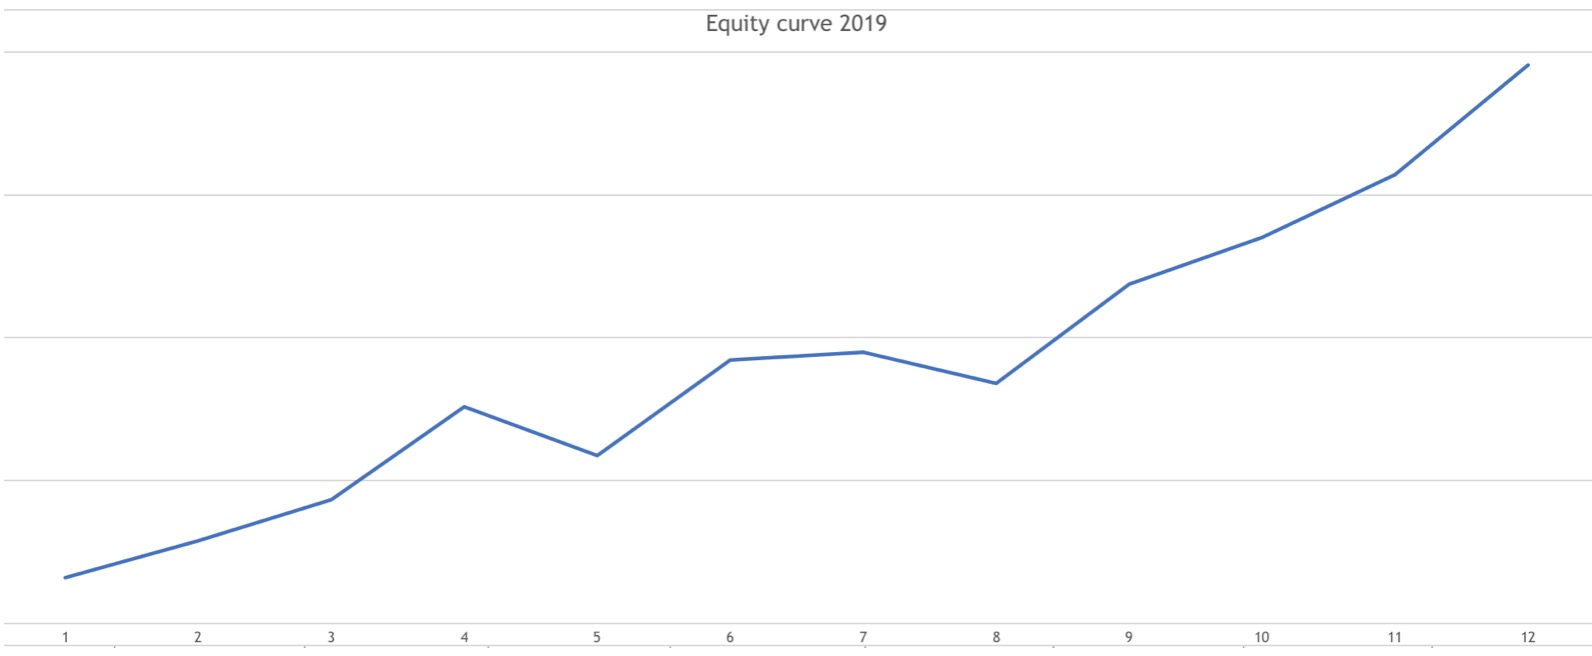 Equity curve 2019